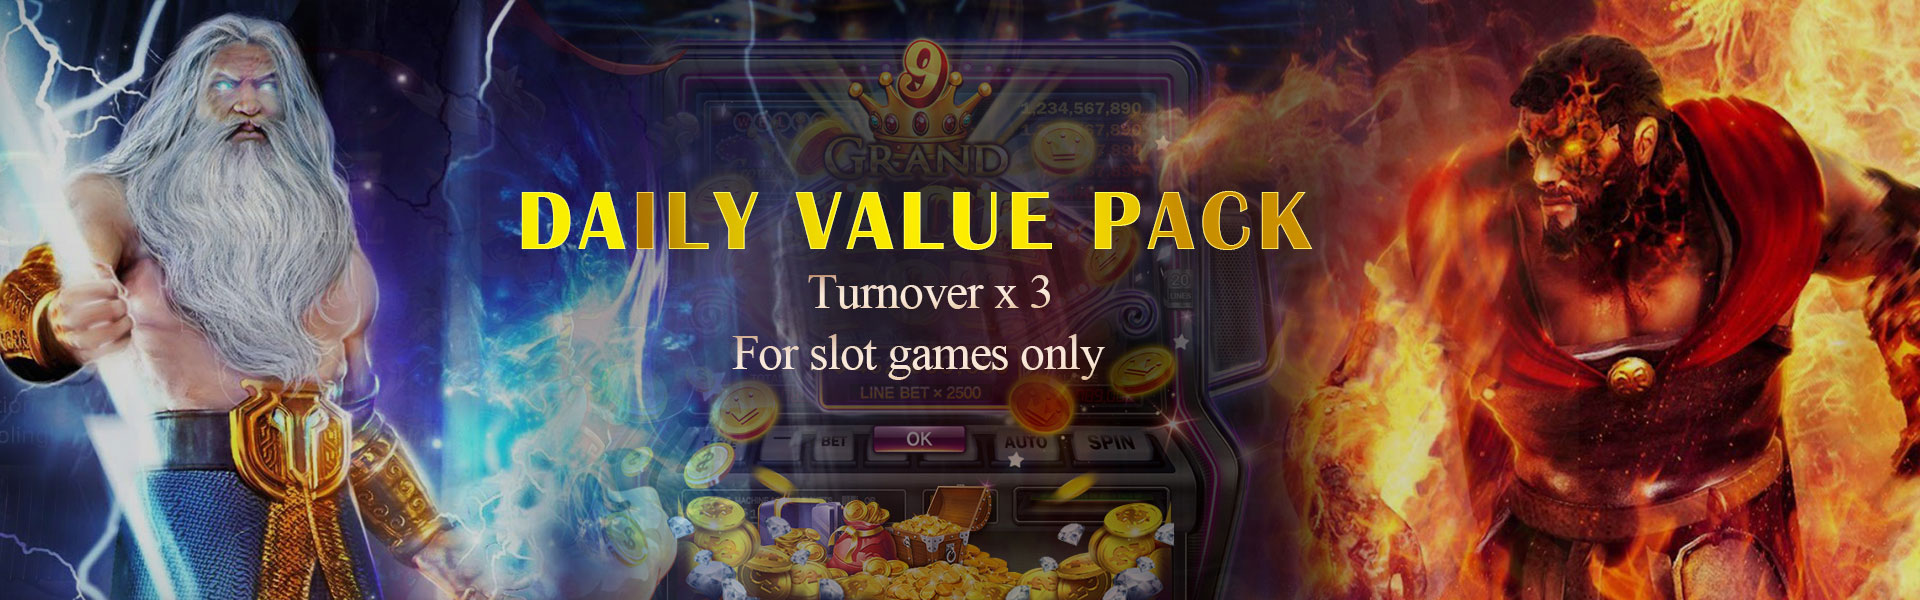 Daily Value Pack